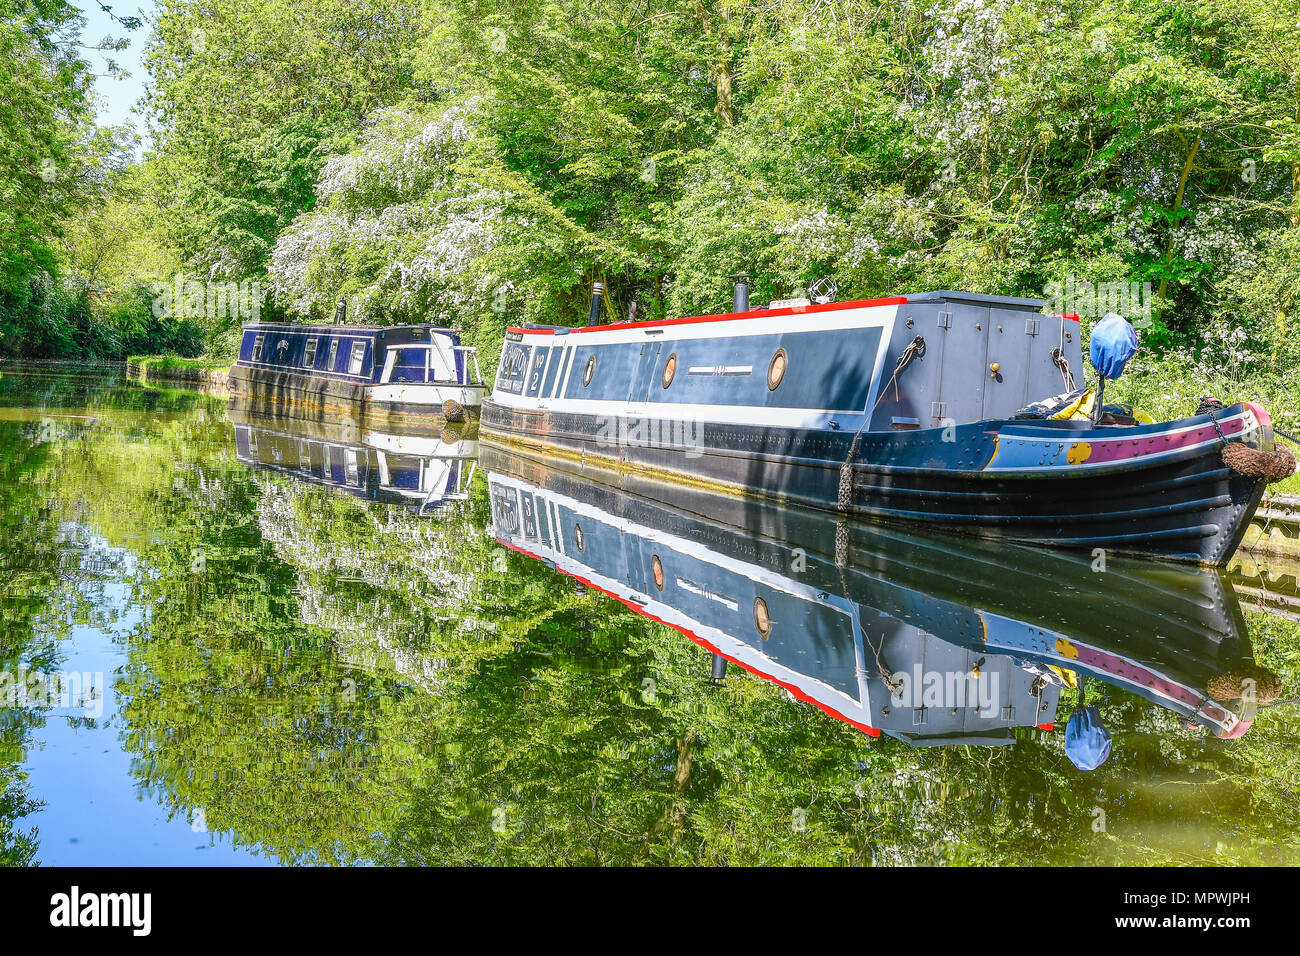 Narrow boat moored to the towpath on a sunny spring day at the Market Harborough arm of the Grand Union canal, England. - Stock Image